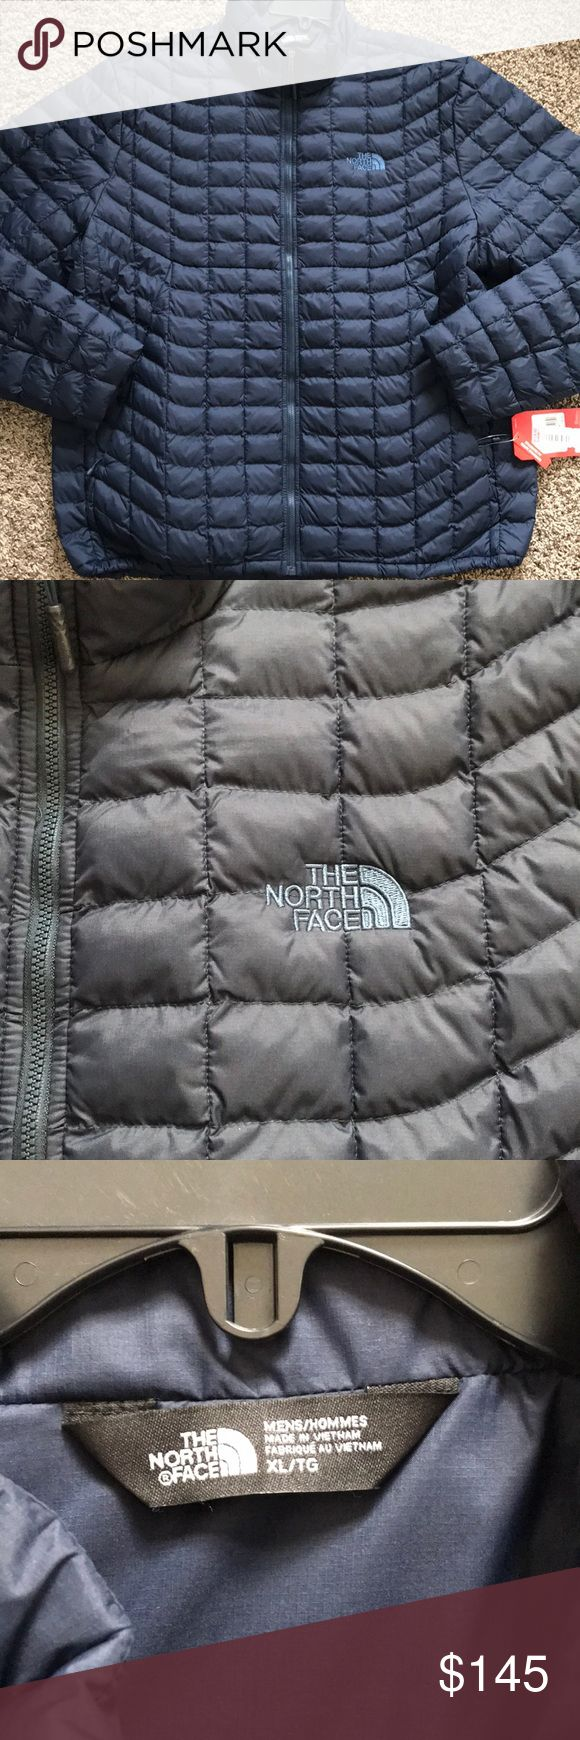 NWT North Face Men's navy blue puffer jacket warm This is a nice navy blue color XL North face puffer jacket.  Smoke free pet free home The North Face Jackets & Coats Puffers